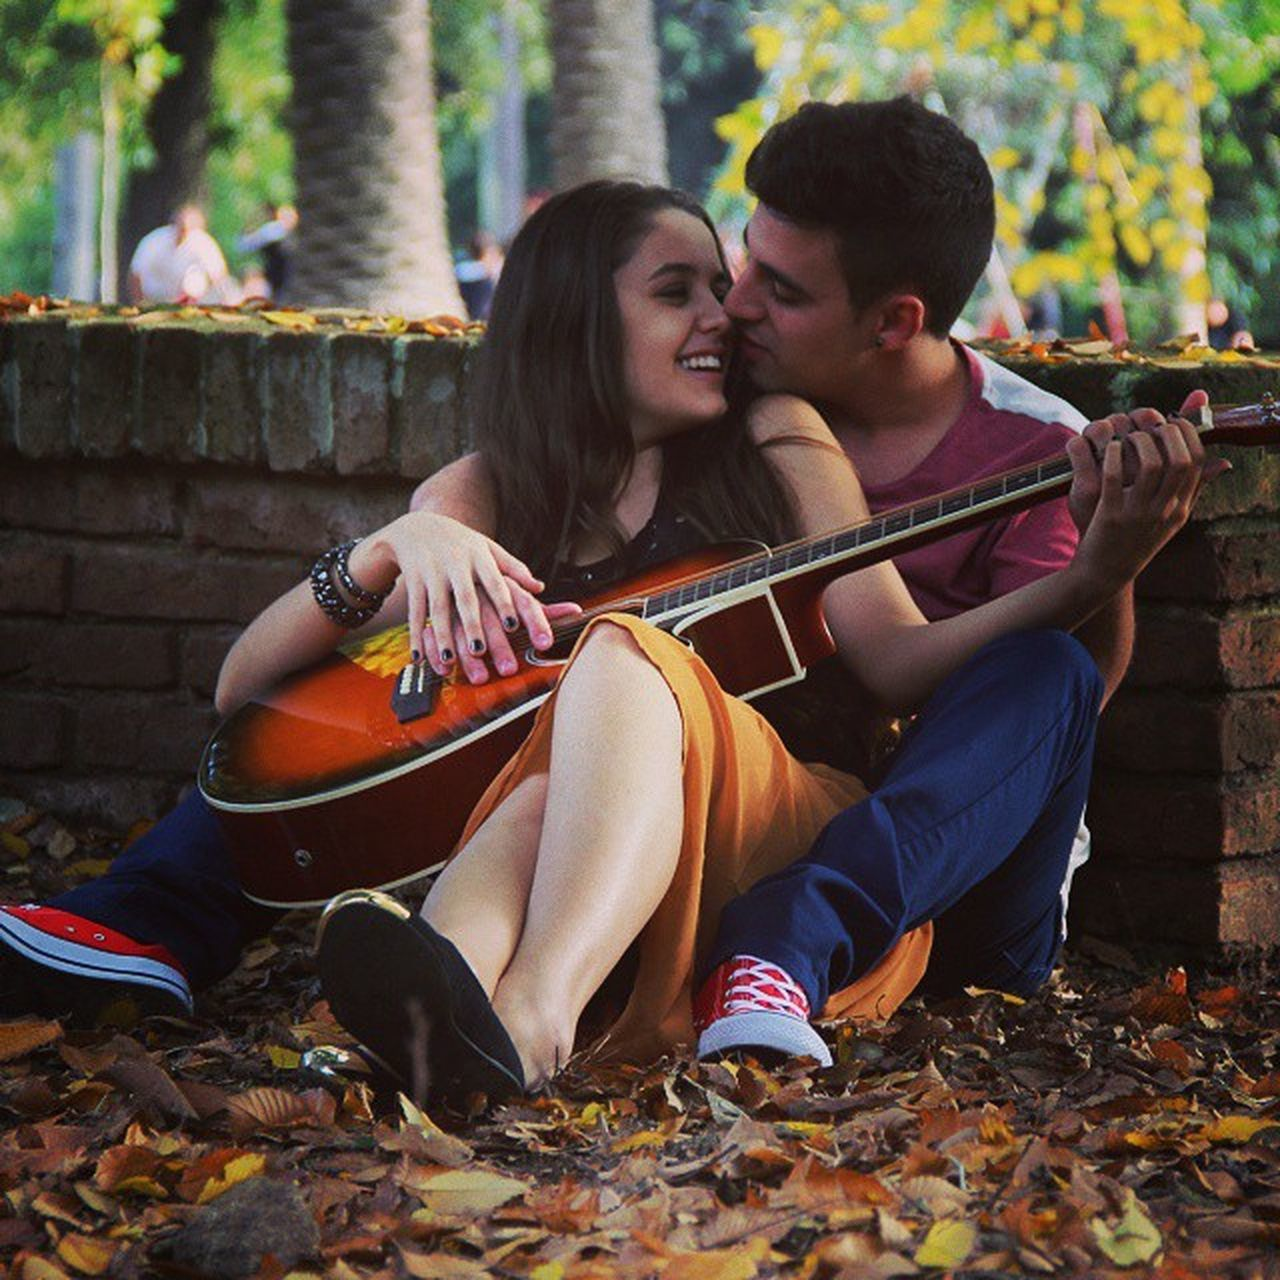 two people, autumn, leaf, music, heterosexual couple, togetherness, playing, love, young women, couple - relationship, smiling, young adult, change, arts culture and entertainment, adult, men, leisure activity, cheerful, young couple, outdoors, guitar, bonding, young men, happiness, full length, people, musician, lifestyles, plucking an instrument, day, sitting, adults only, nature, musical instrument, women, tree